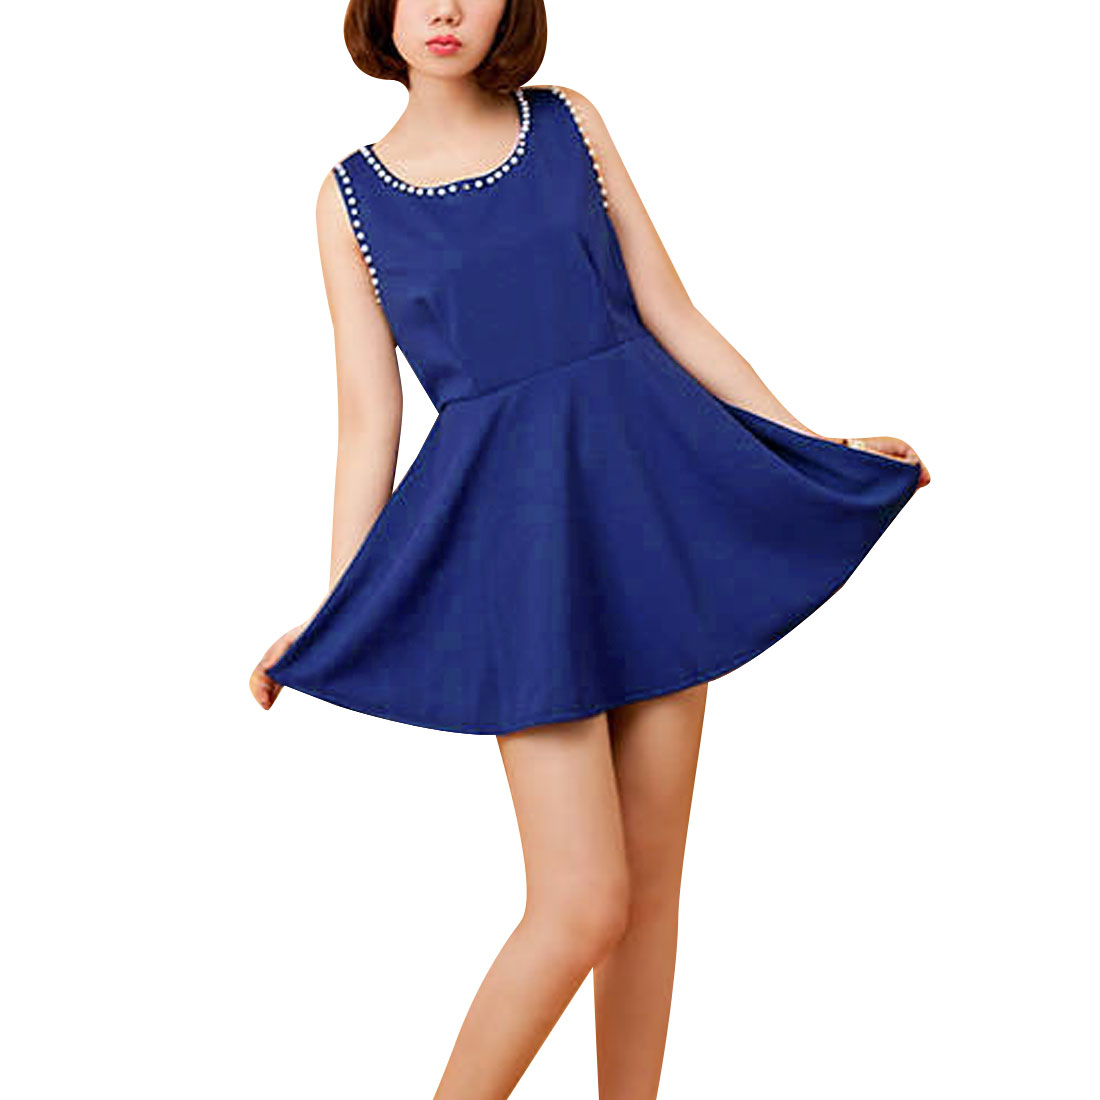 Women Chiffon Sleeveless Above Knee A Line Elegant Dress Royal Blue XS